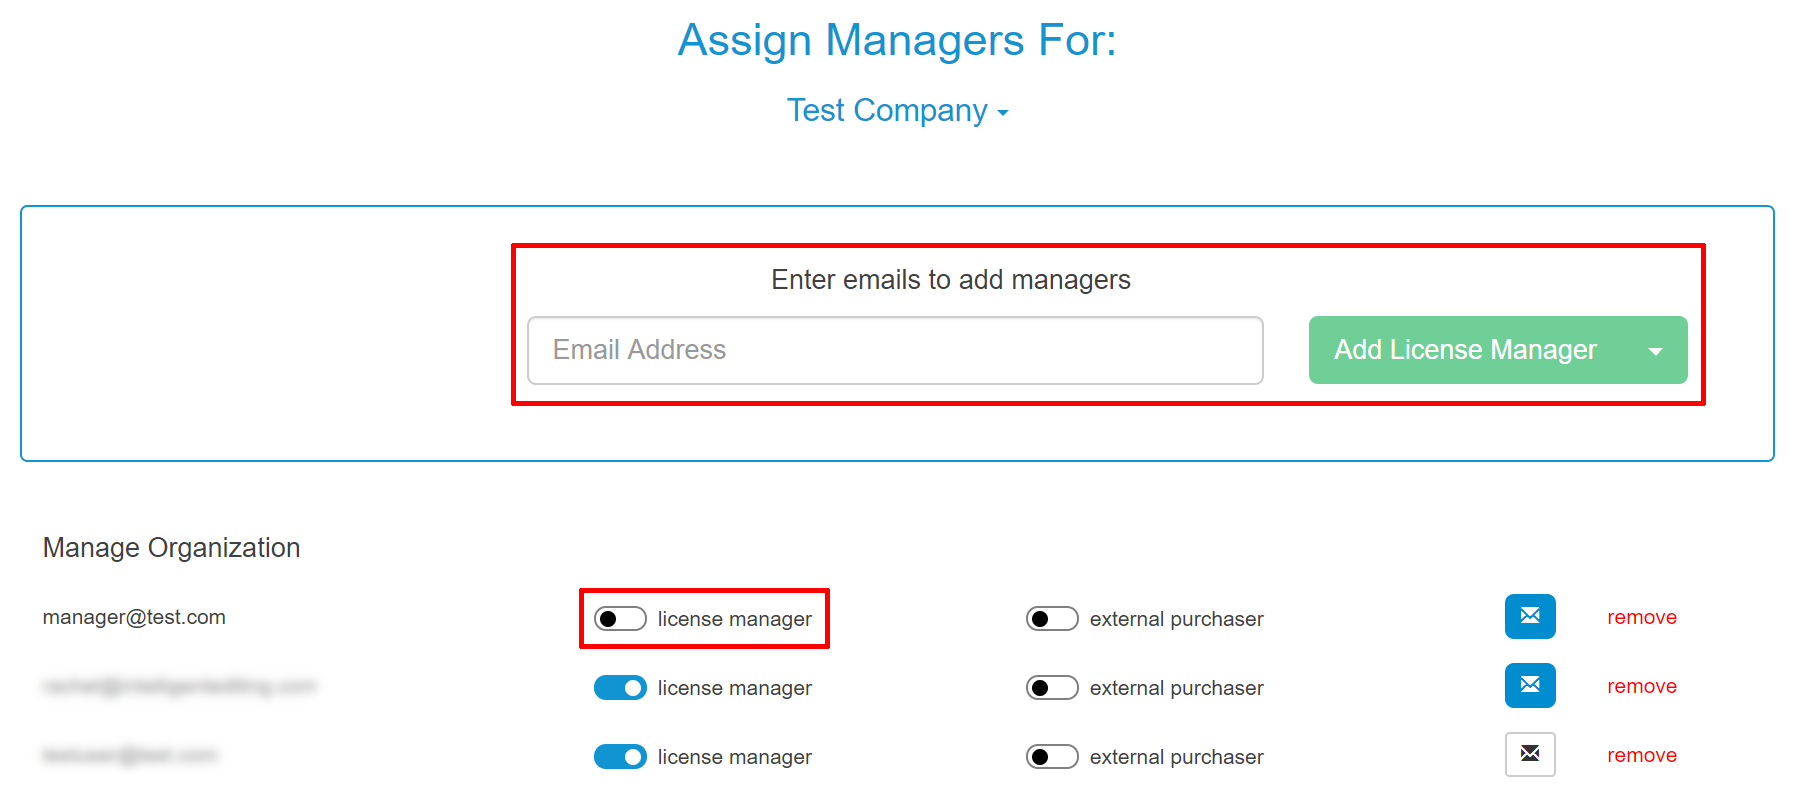 AssignManagers